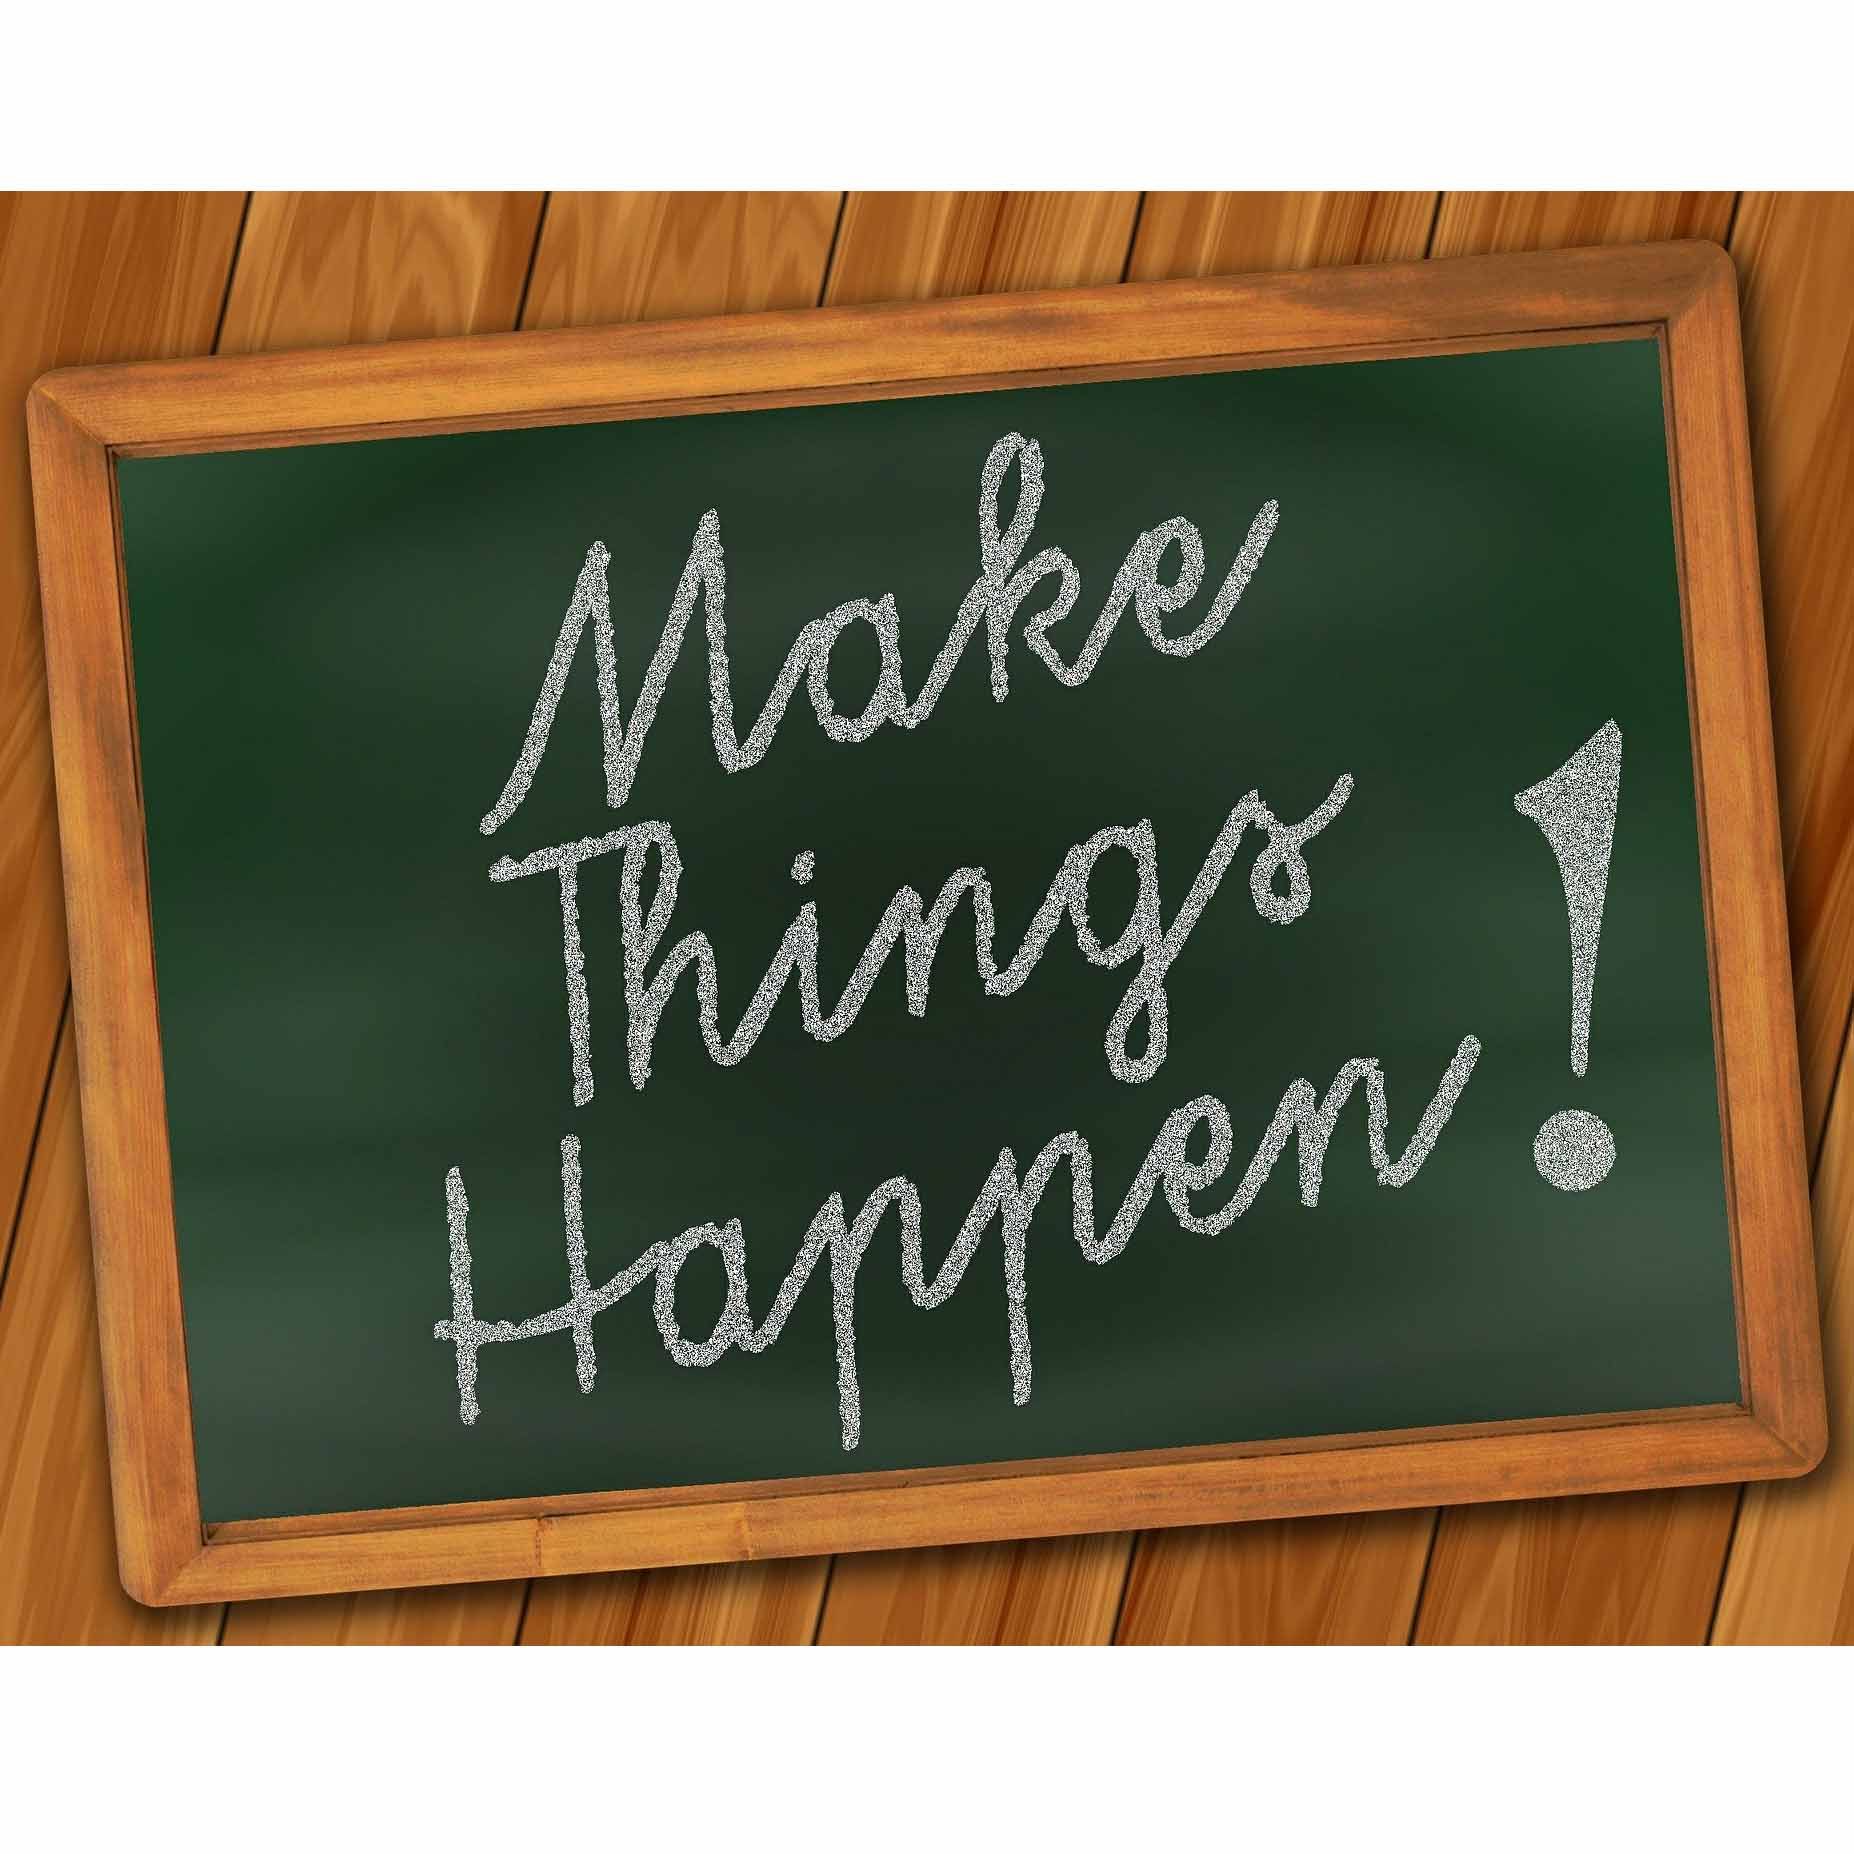 Make things happen (c) www.pixabay.com